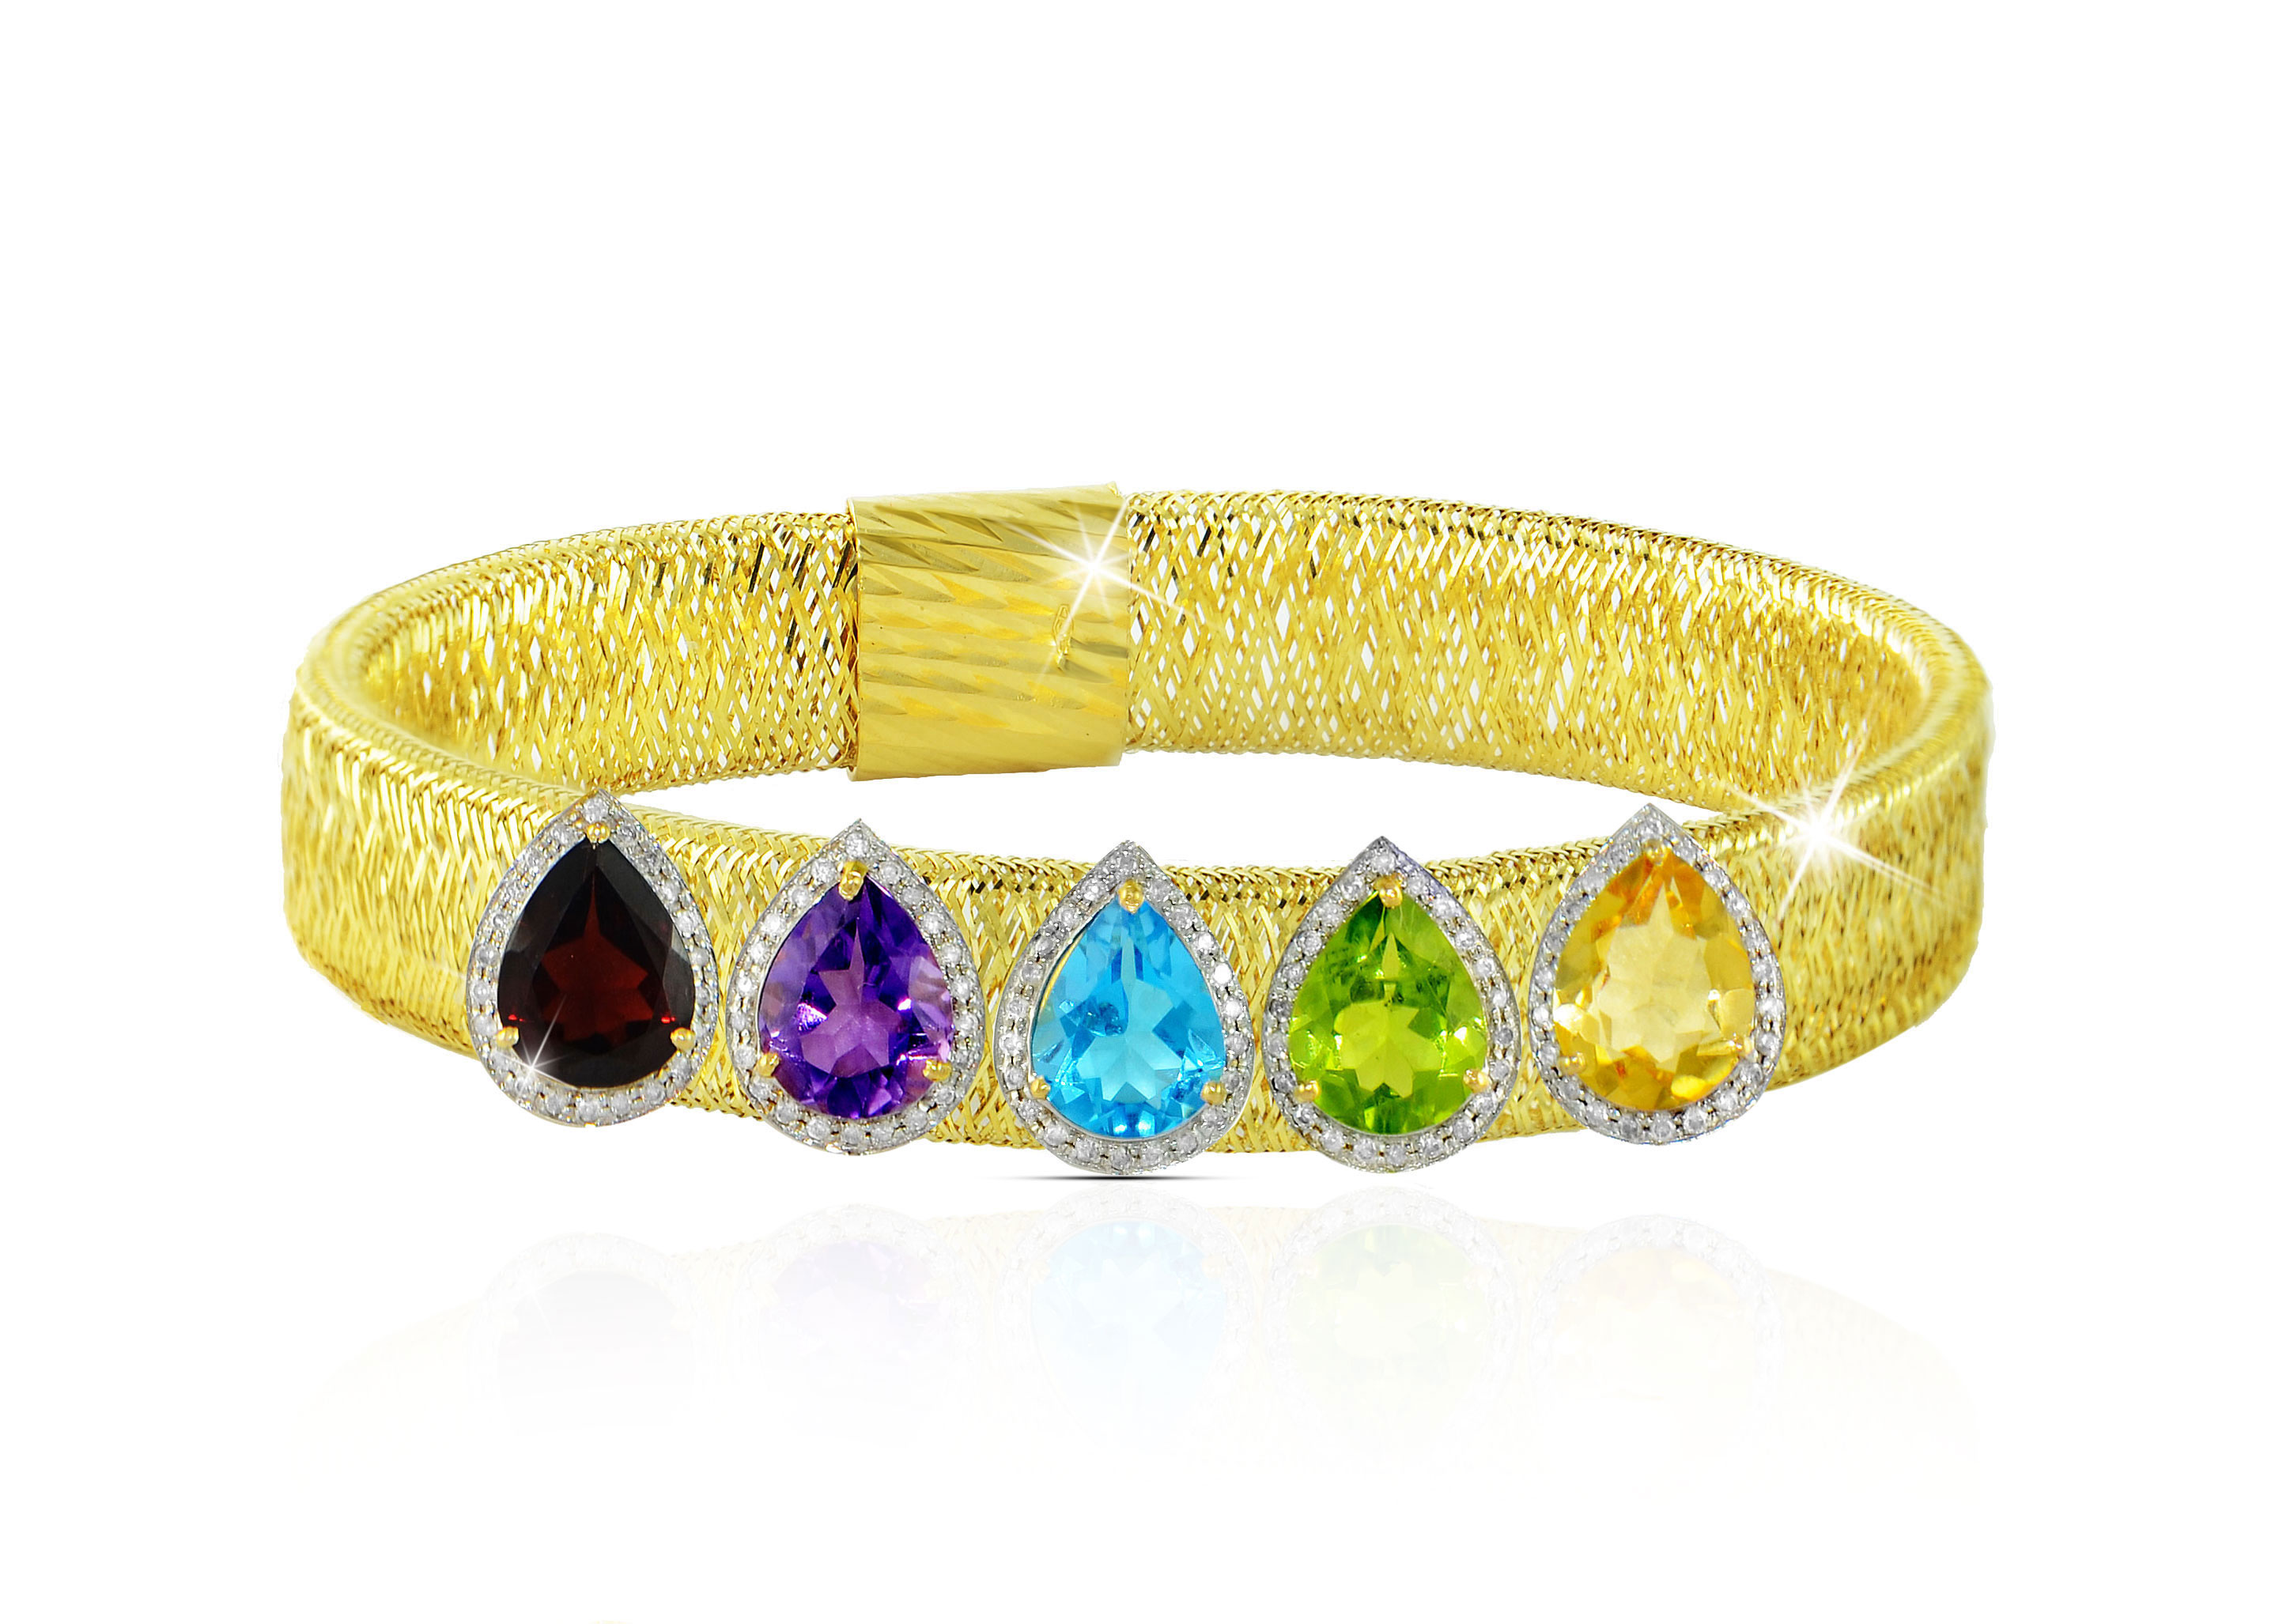 Vera Perla 18k Solid Gold 0.64Ct Genuine Diamonds and Multi-Gemstones Mesh Bracelet